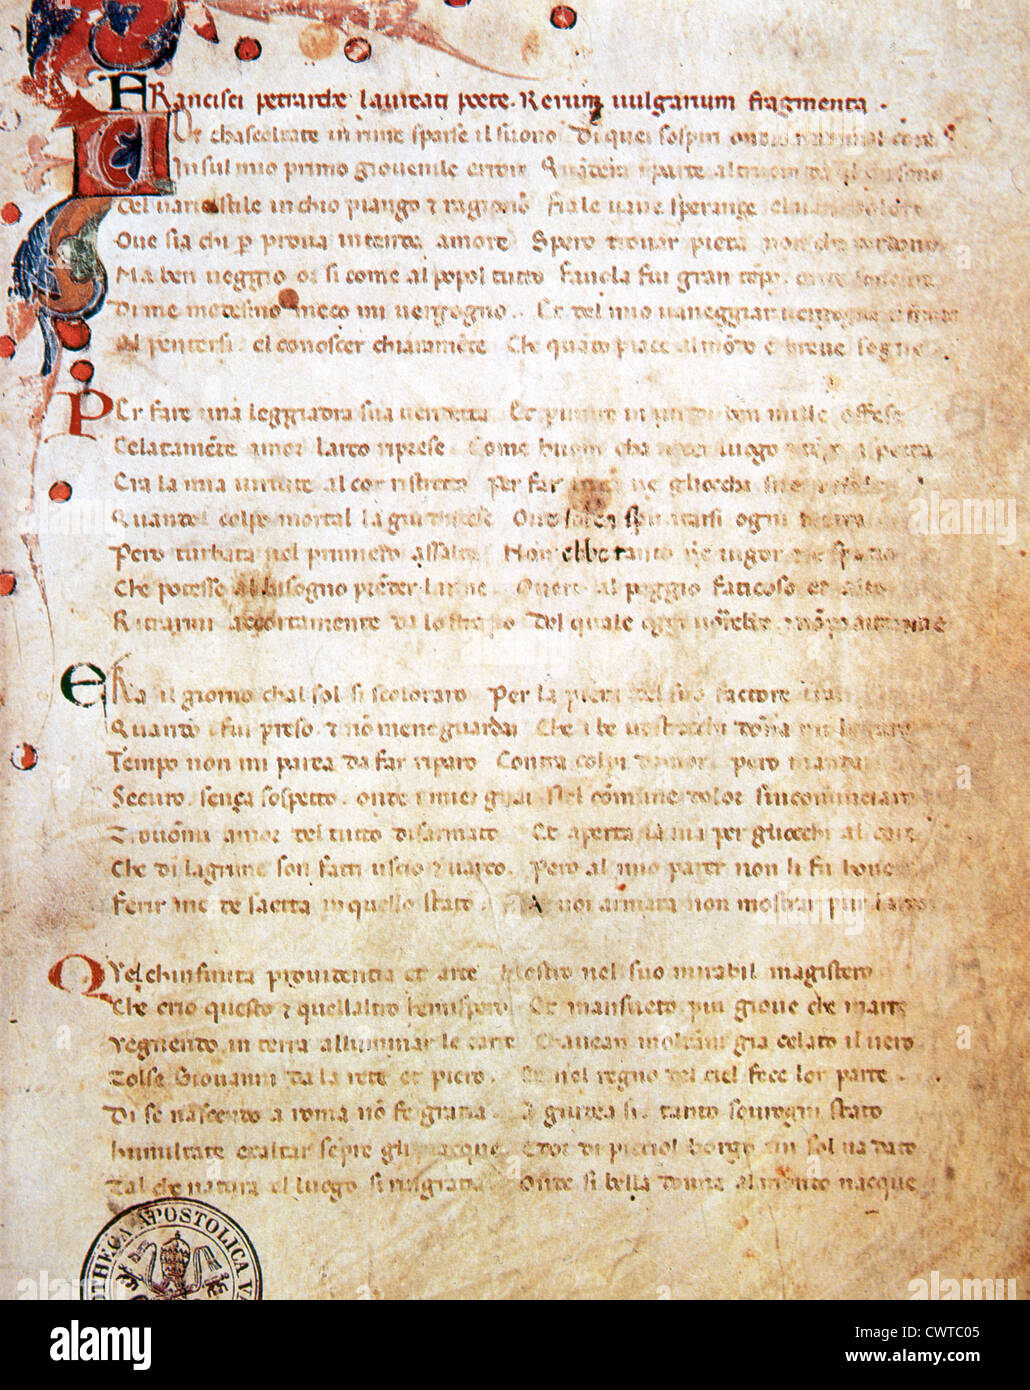 Petrarch (1304-1374). Song Book (Il Canzoniere), Also known as the Scattered Rhymes. Poem. Folio 1r. Vatican Library. - Stock Image